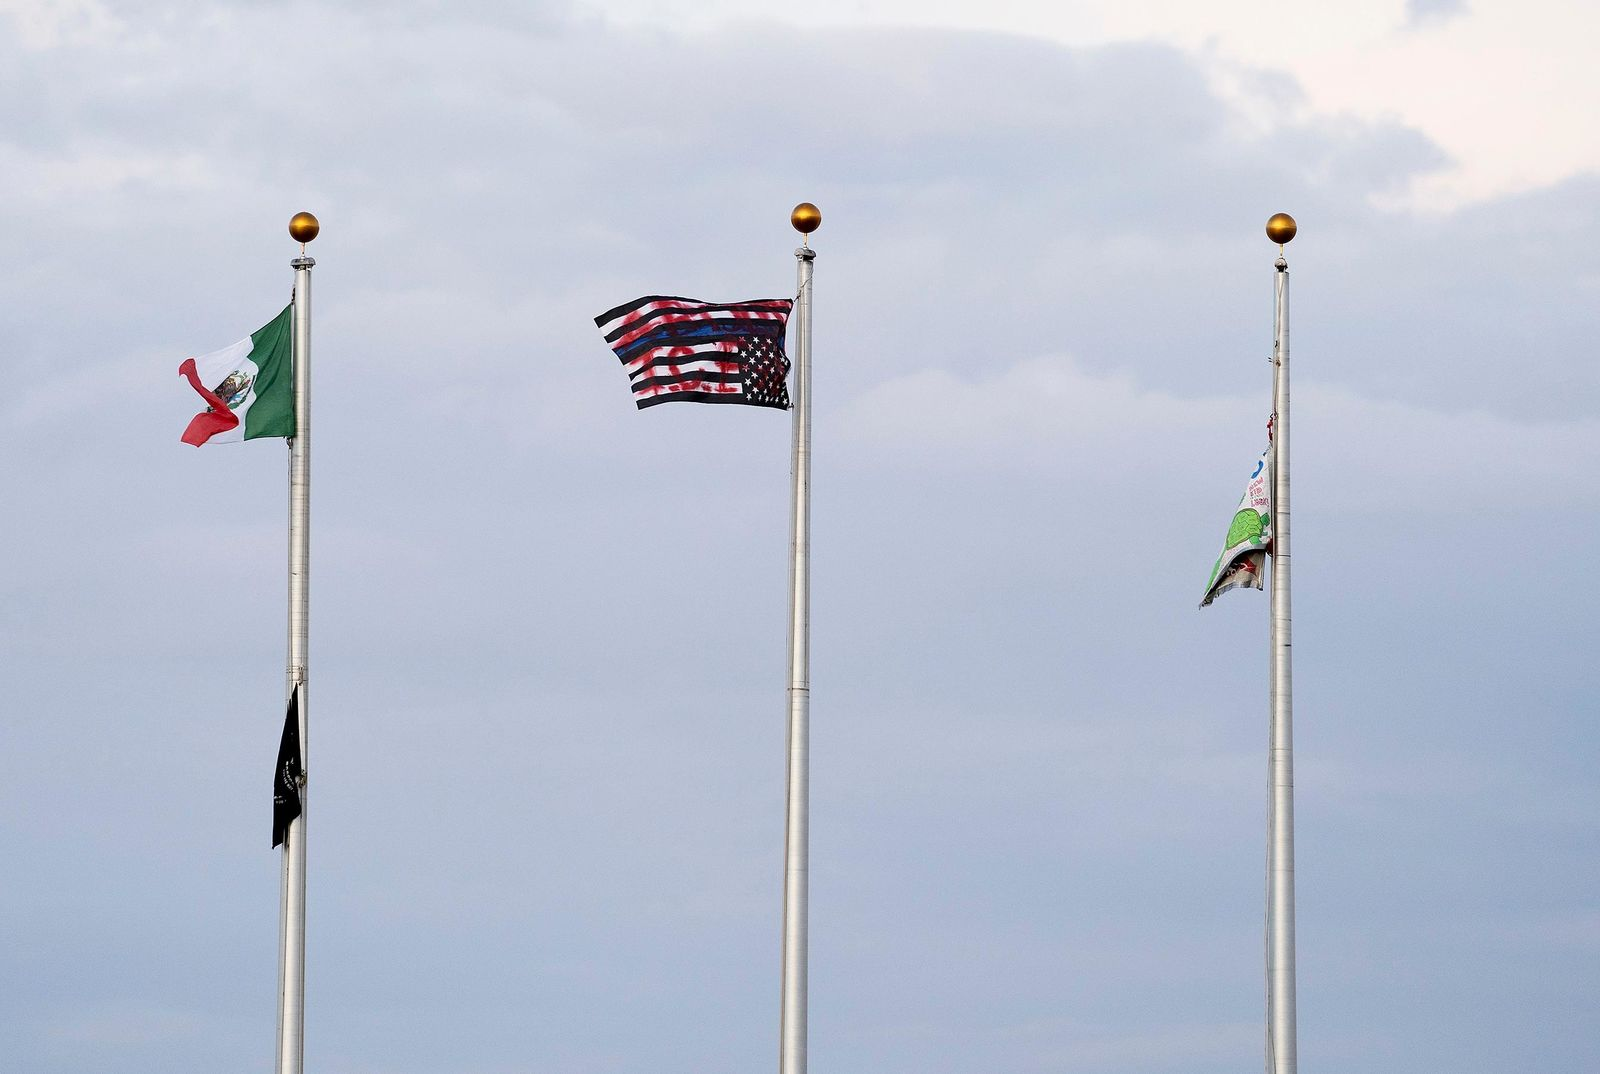 This Friday, July 12, 2019, photo shows a Mexican flag, from left, an upside down U.S. flag with a blue line and graffiti on it and a protesting banner after the Colorado state flag, the American flag and the GEO company flag were dropped and replaced, while hundreds of protesters assembled for a march at the GEO facility in Aurora, Colo. Police say they will be reviewing any available video to help them identity protesters who trespassed and pulled down the American flag in front of an immigration detention center in suburban Denver, tried to burn it and replaced it with a Mexican flag. (Philip B. Poston/The Aurora Sentinel via AP)